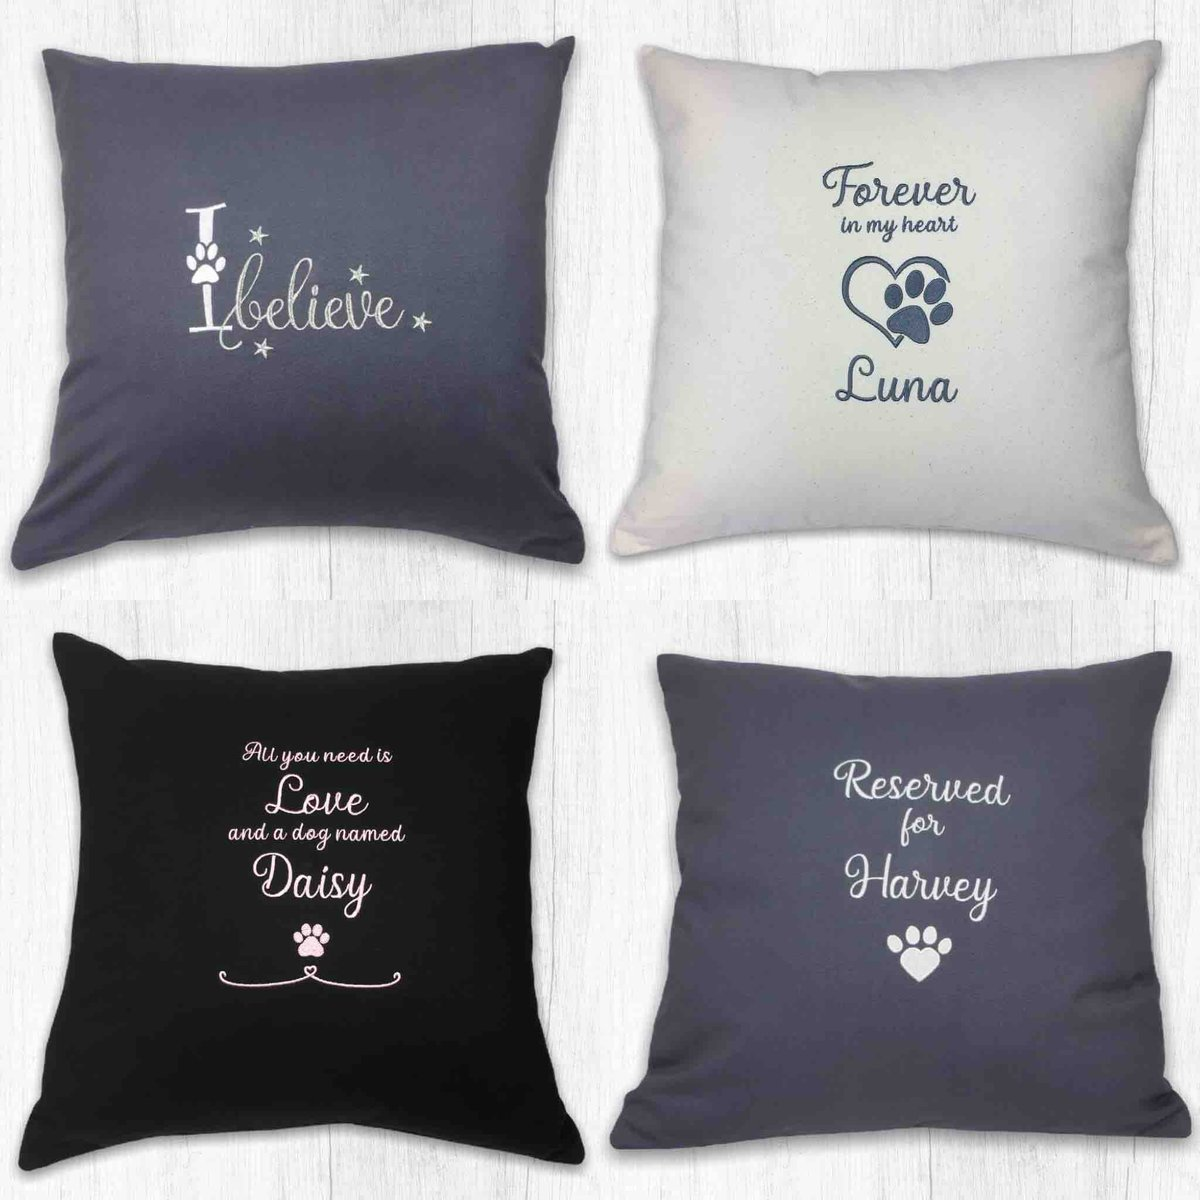 Have you sniffed out our Empawrium packed with  #doggy #gifts?  These #personalised #dog cushions make the pawfect accessory for your home      #inbizhour #dogsoftwitter